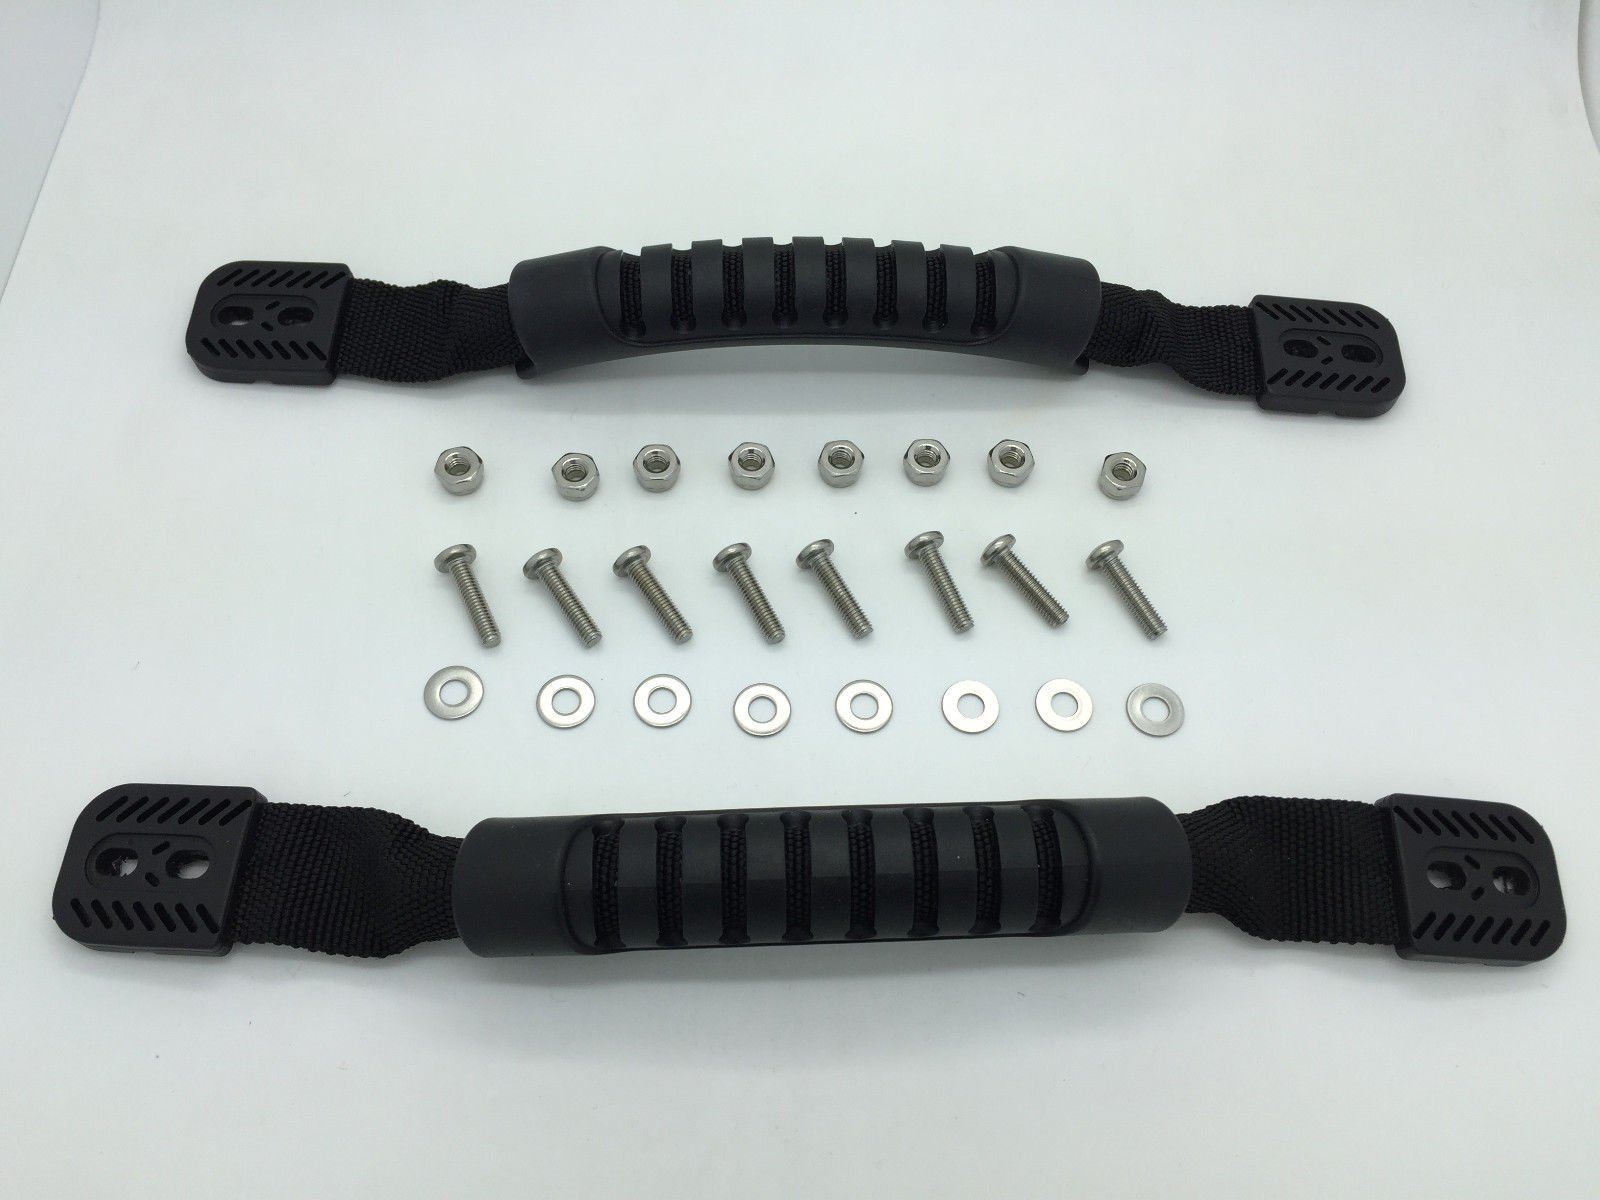 Details about DURABLE RUBBER HANDLES FOR KAYAK, CANOE OR LUGGAGE SET OF 2 WITH HARDWARE